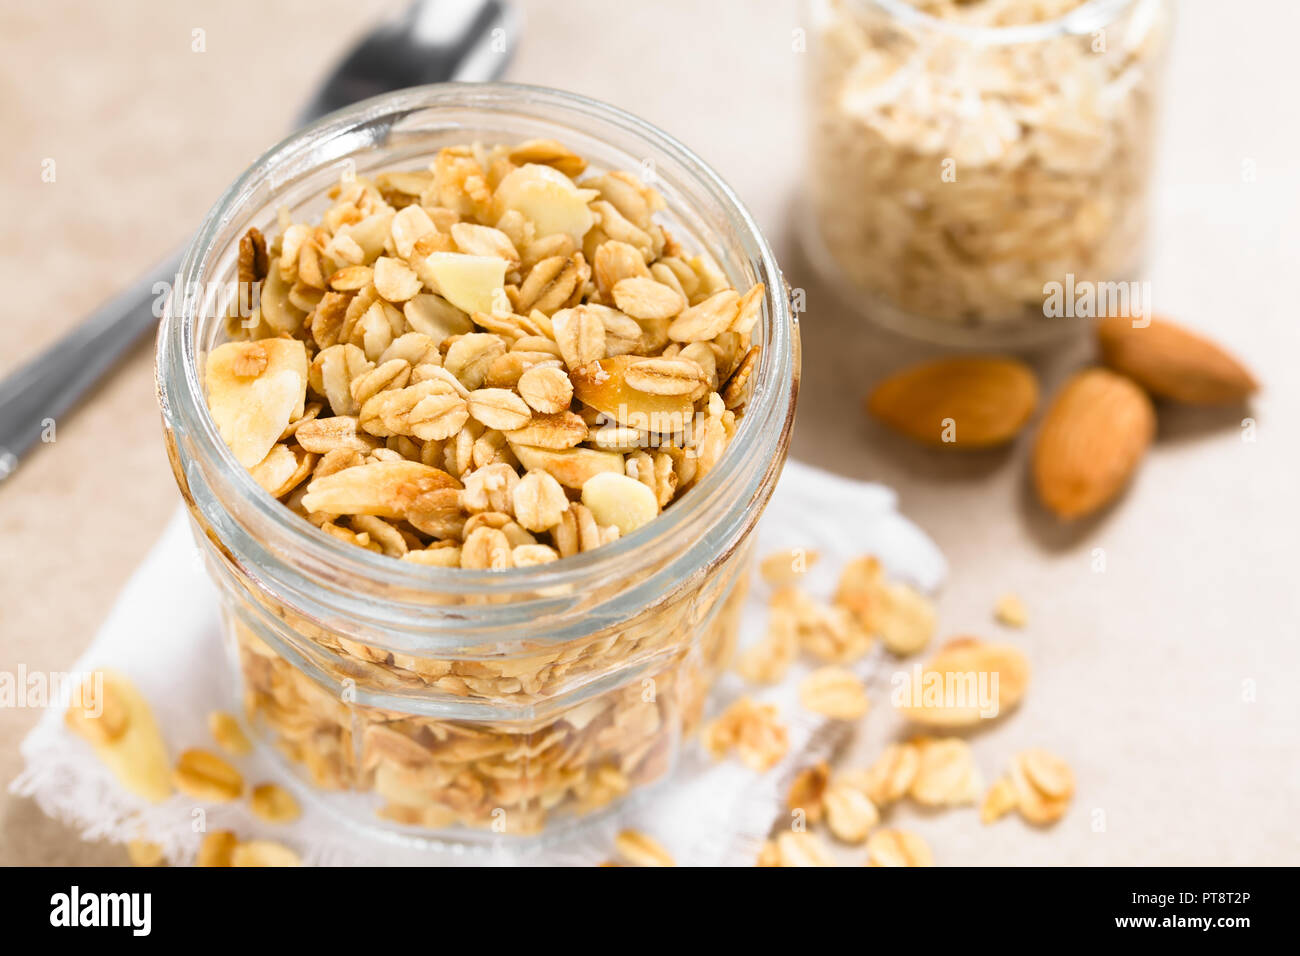 Homemade baked crunchy oatmeal, sliced almond, honey and coconut oil